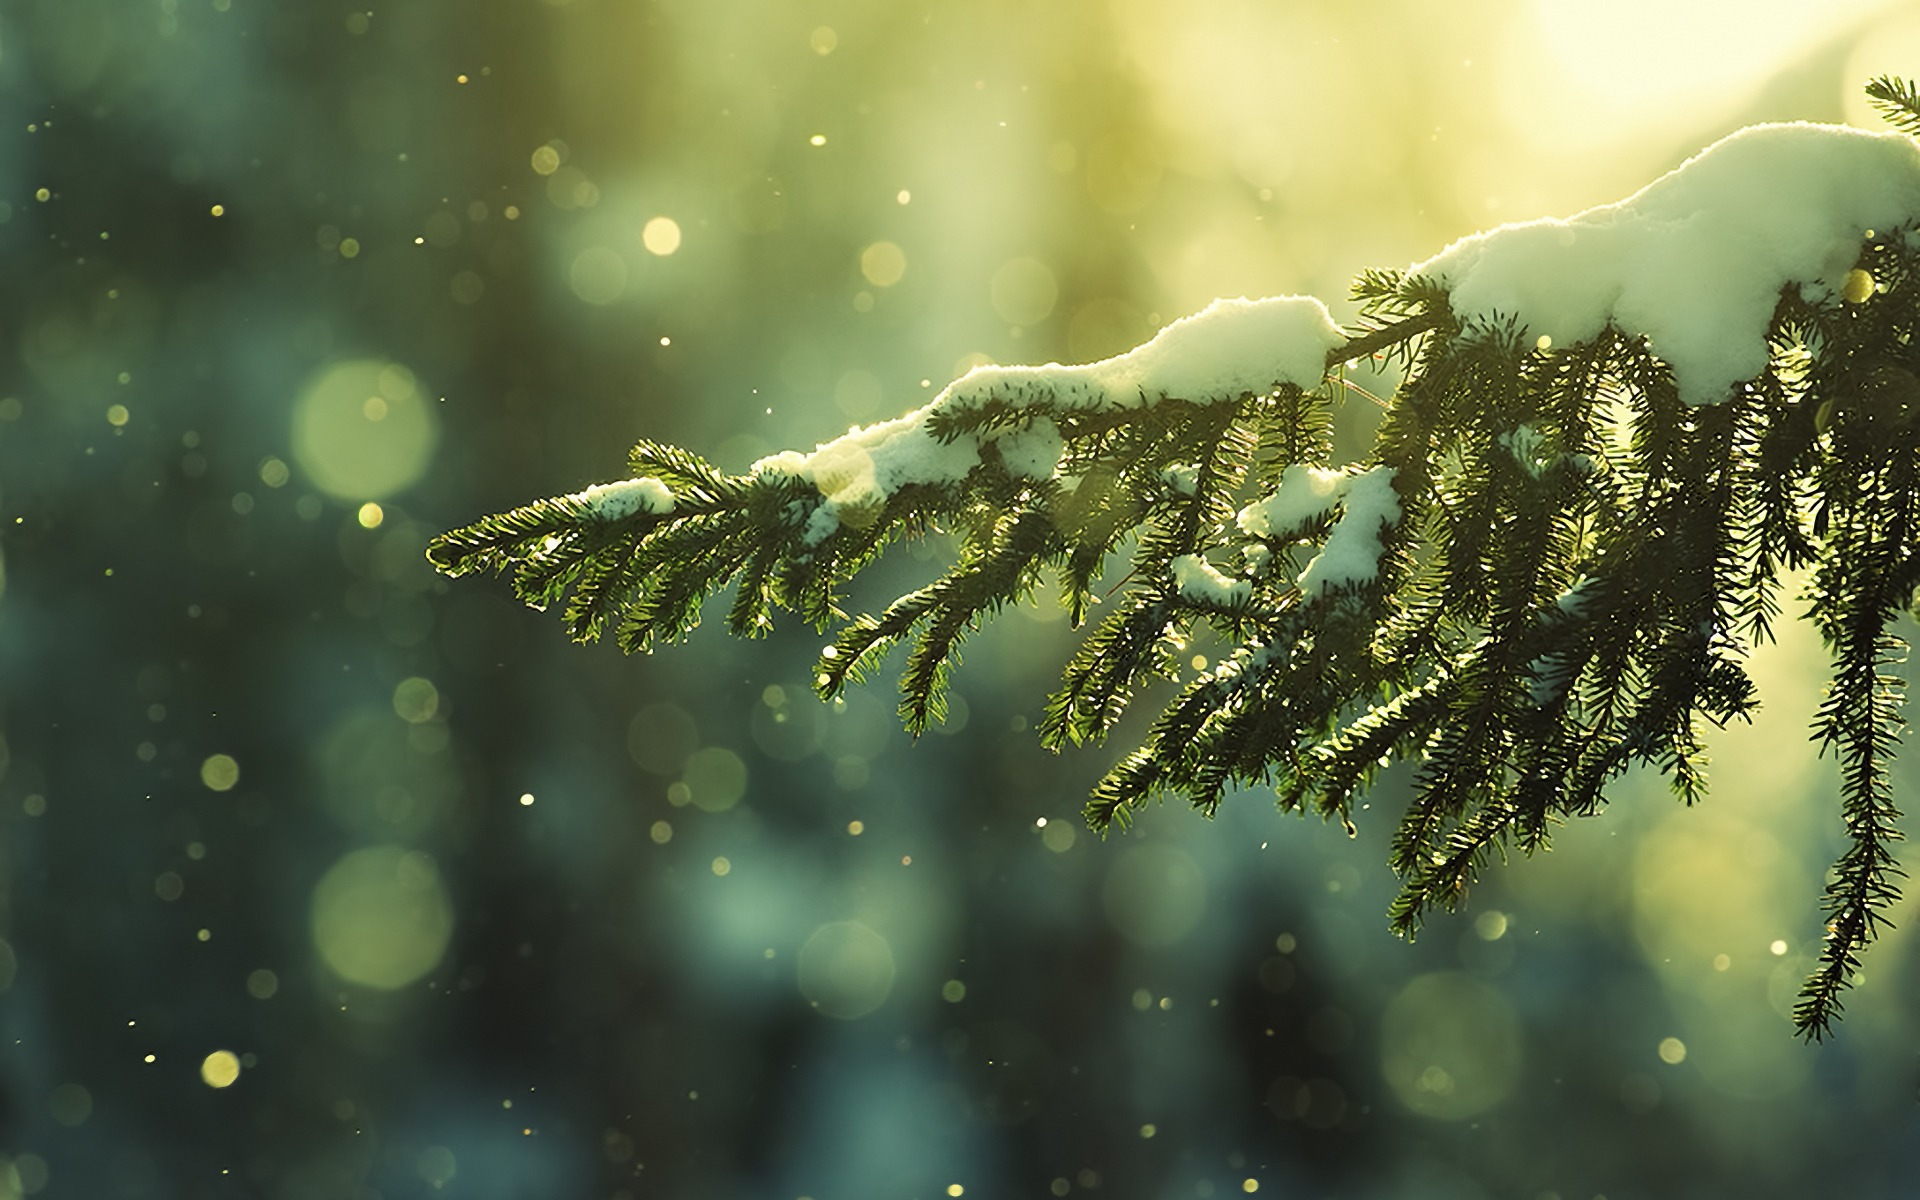 Winter Hd Wallpaper Background Image 1920x1200 Id